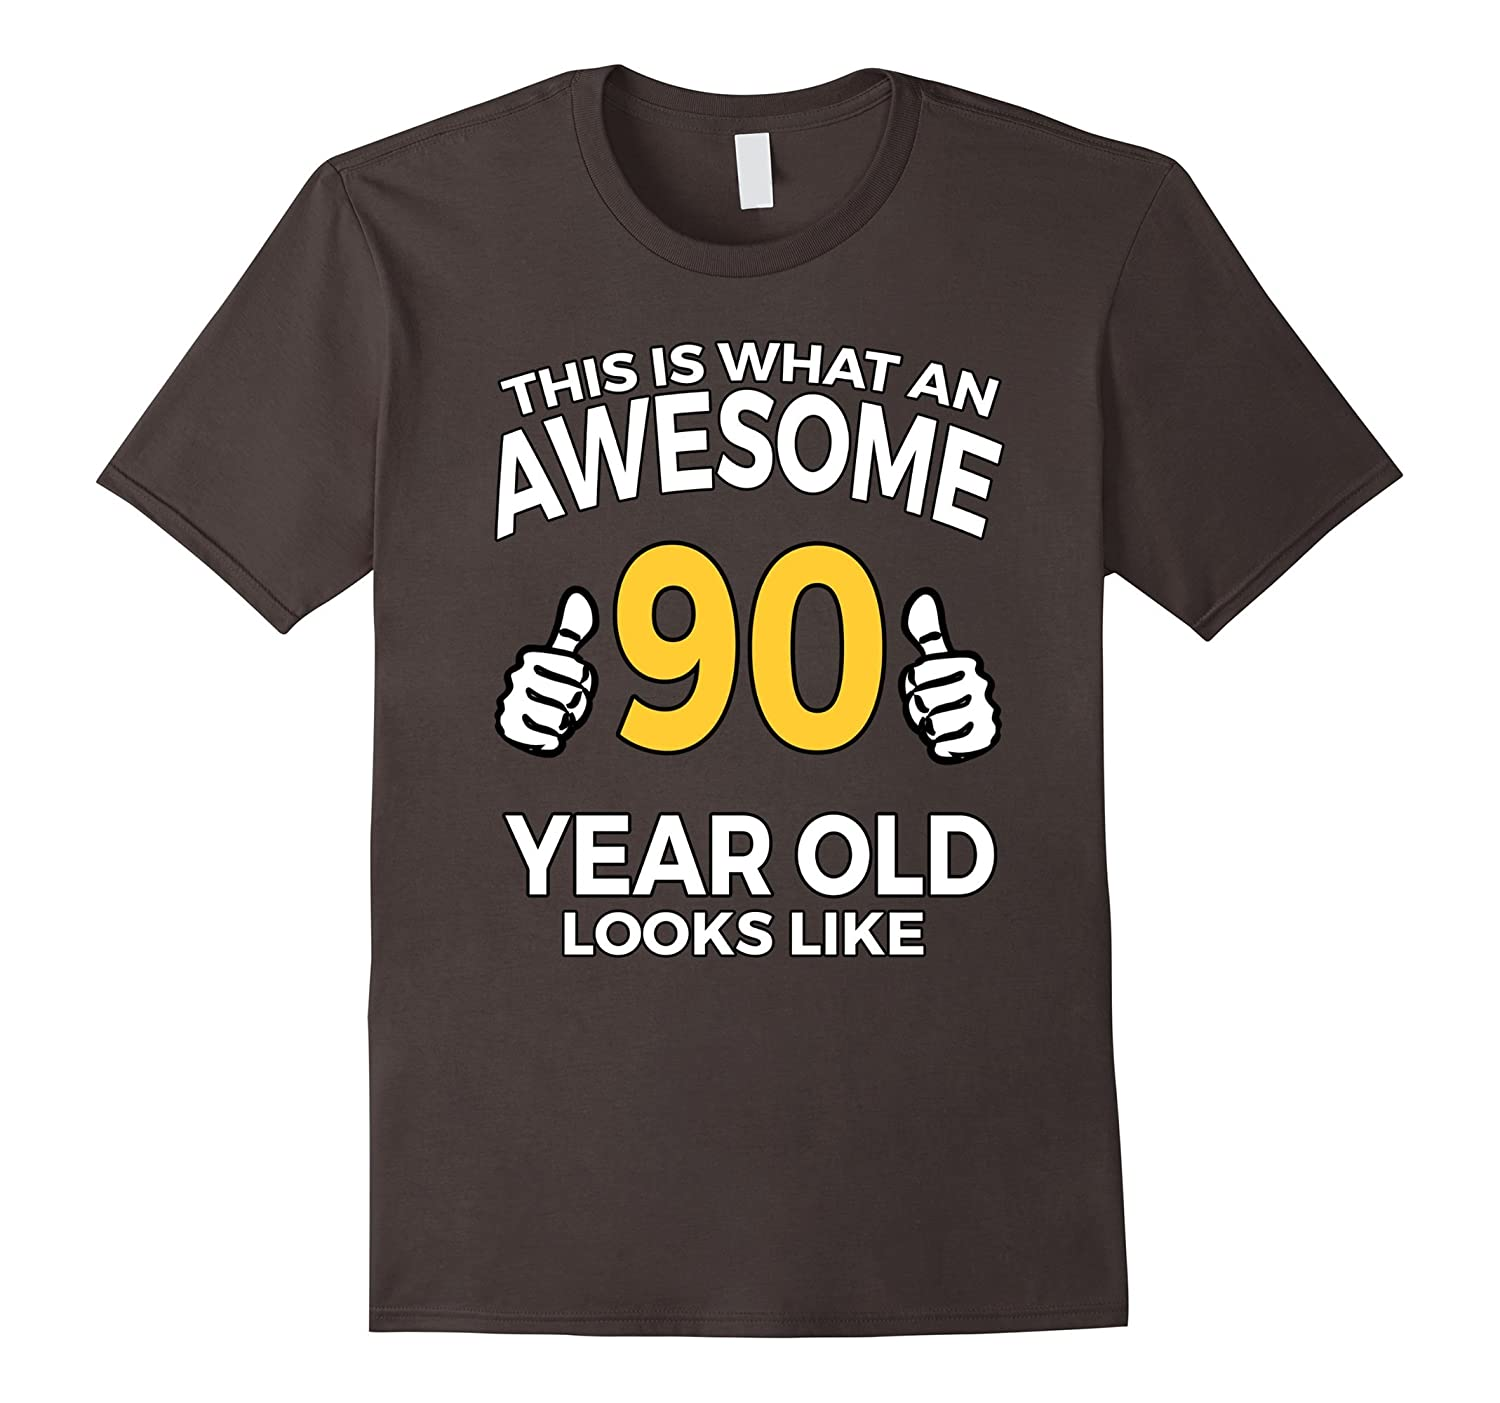 90 Year Old Birthday Gifts T Shirt For A Senior Man Or Woman TD